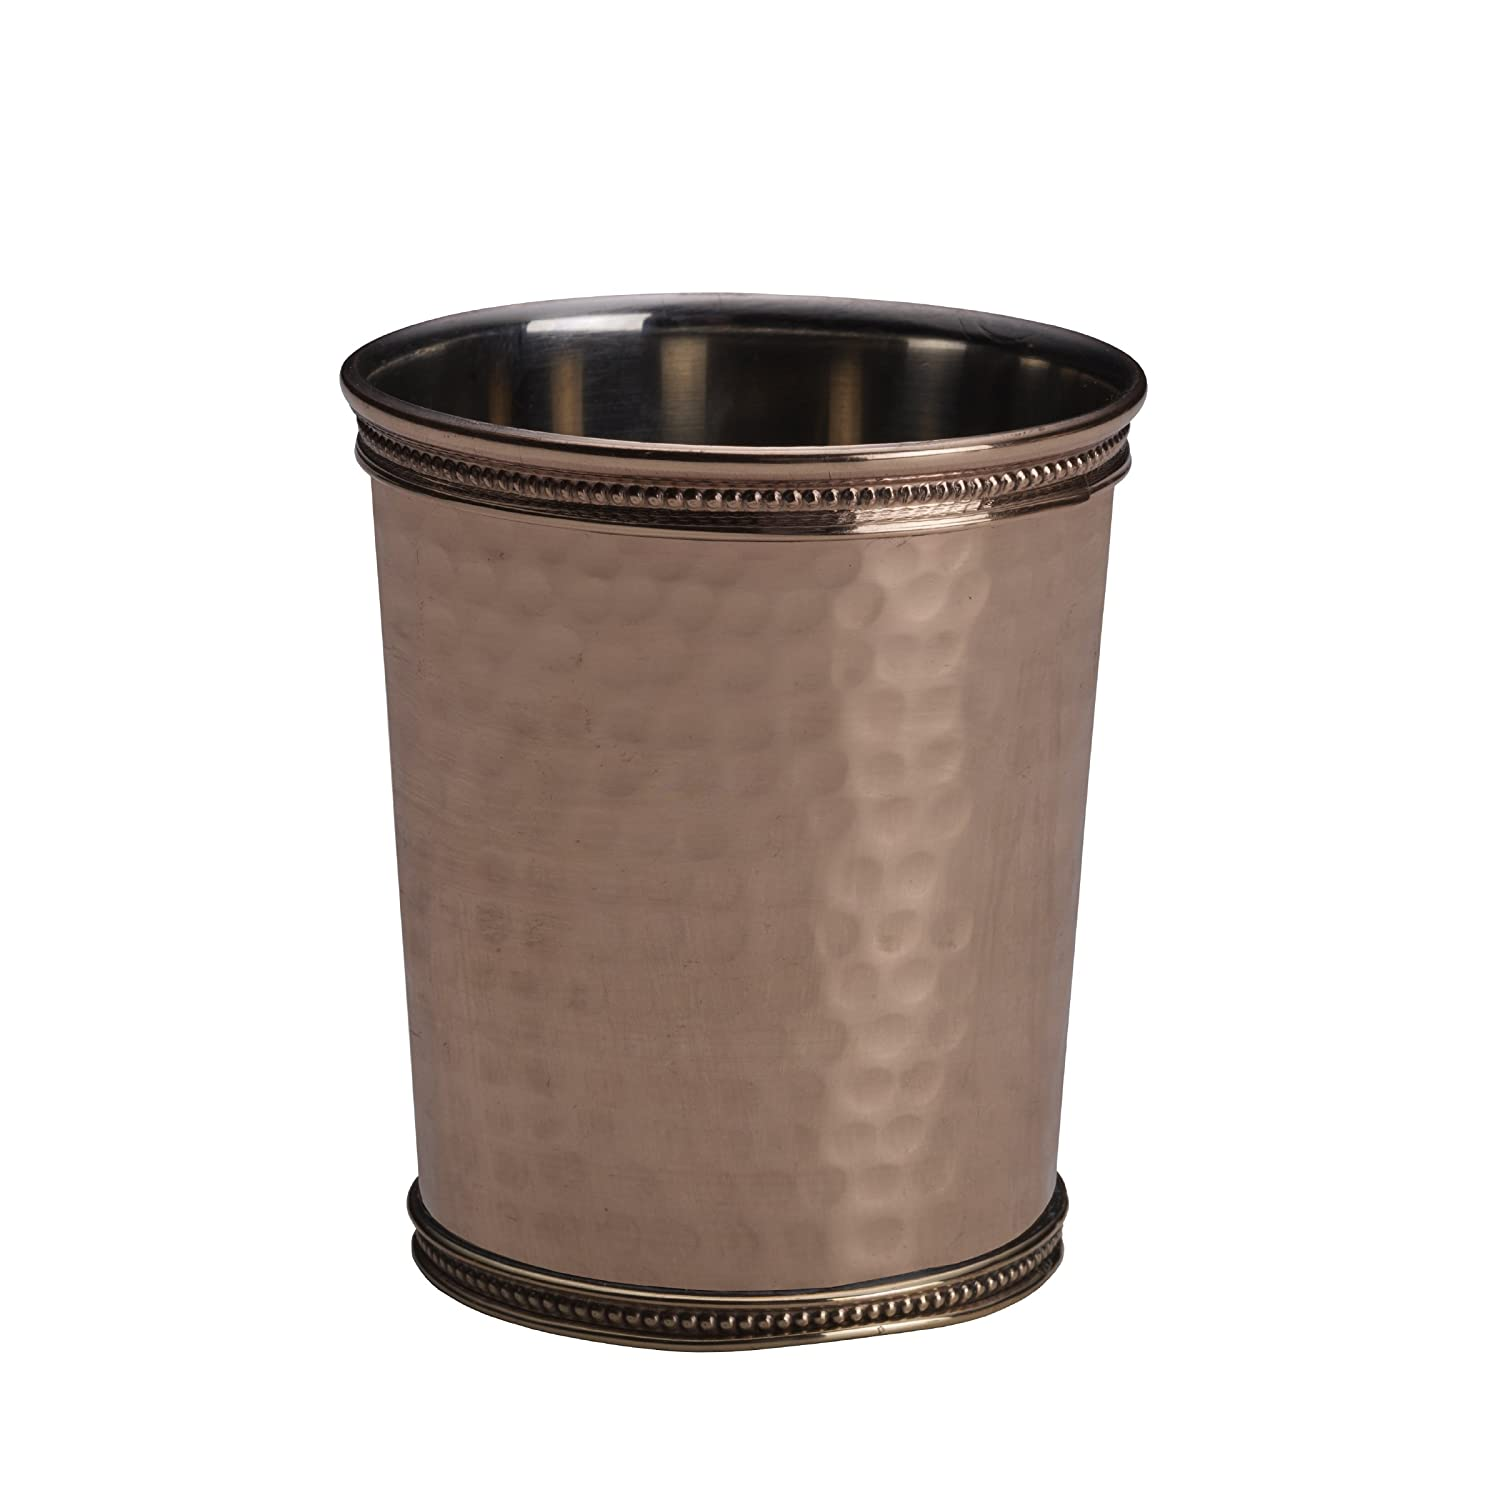 Mikasa Solid Copper Hammered Mint Julep Cup Syratech Domestic 5142333